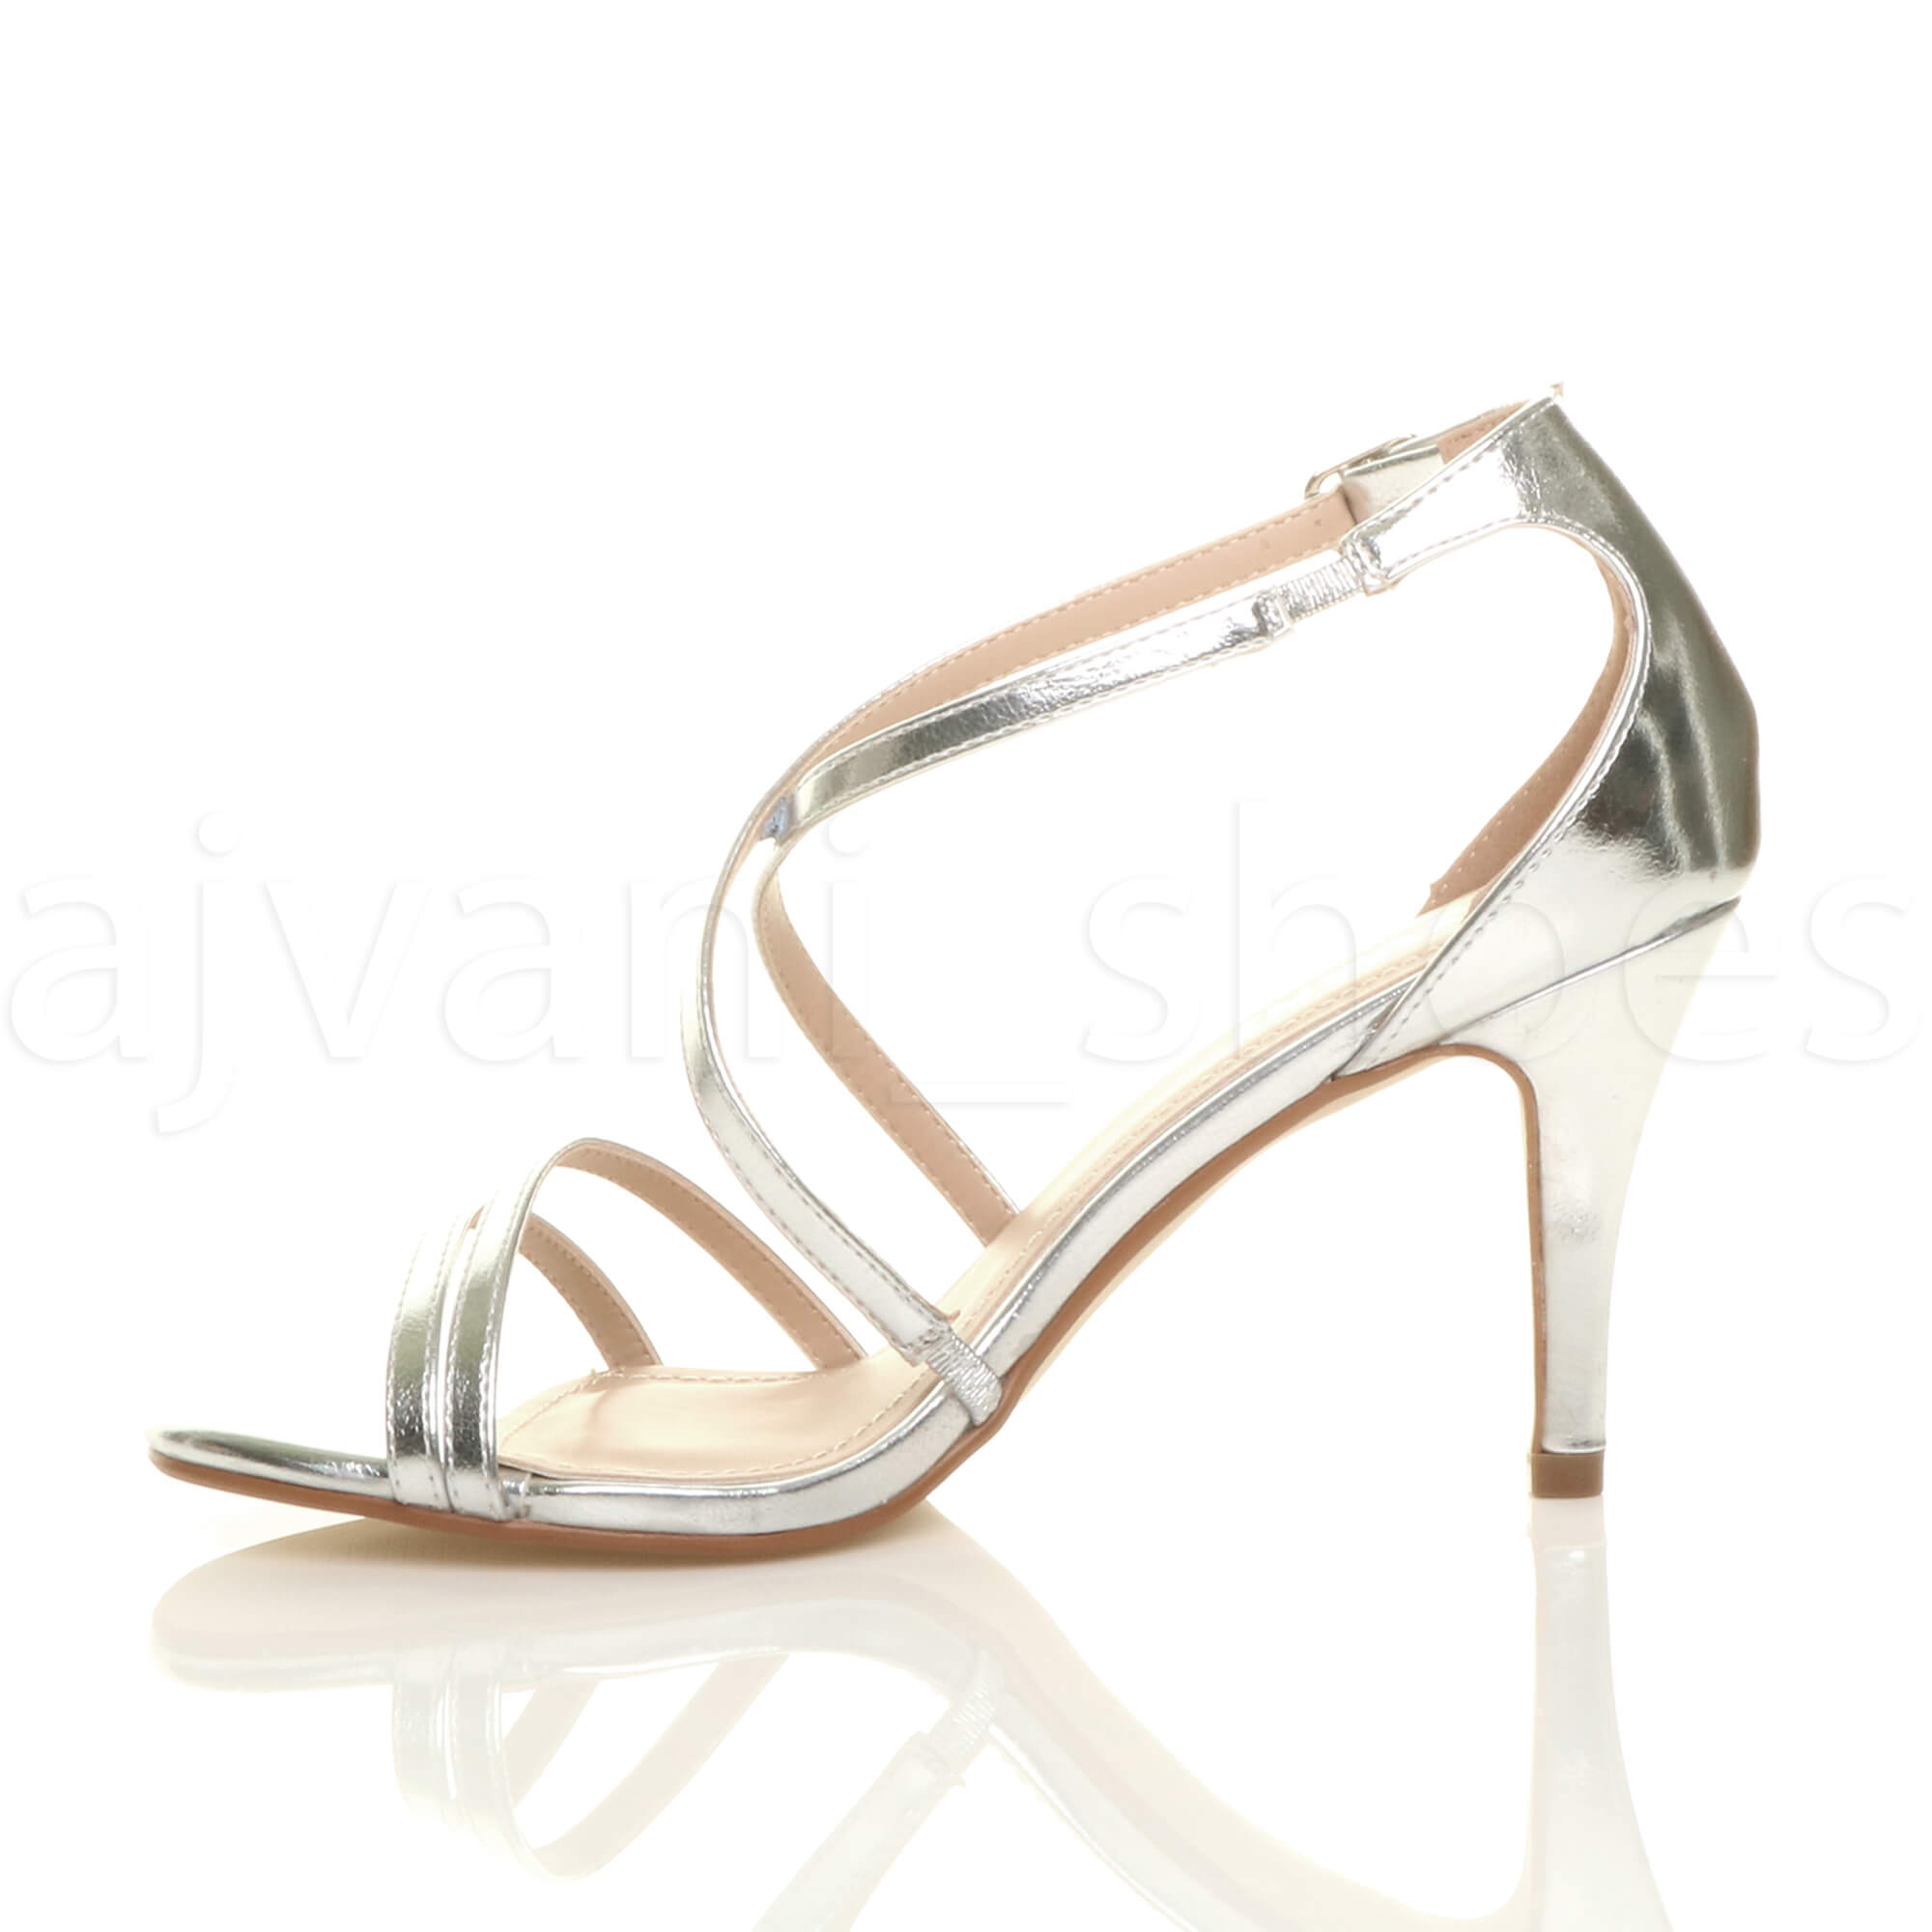 WOMENS-LADIES-MID-HIGH-HEEL-STRAPPY-CROSSOVER-WEDDING-PROM-SANDALS-SHOES-SIZE thumbnail 151